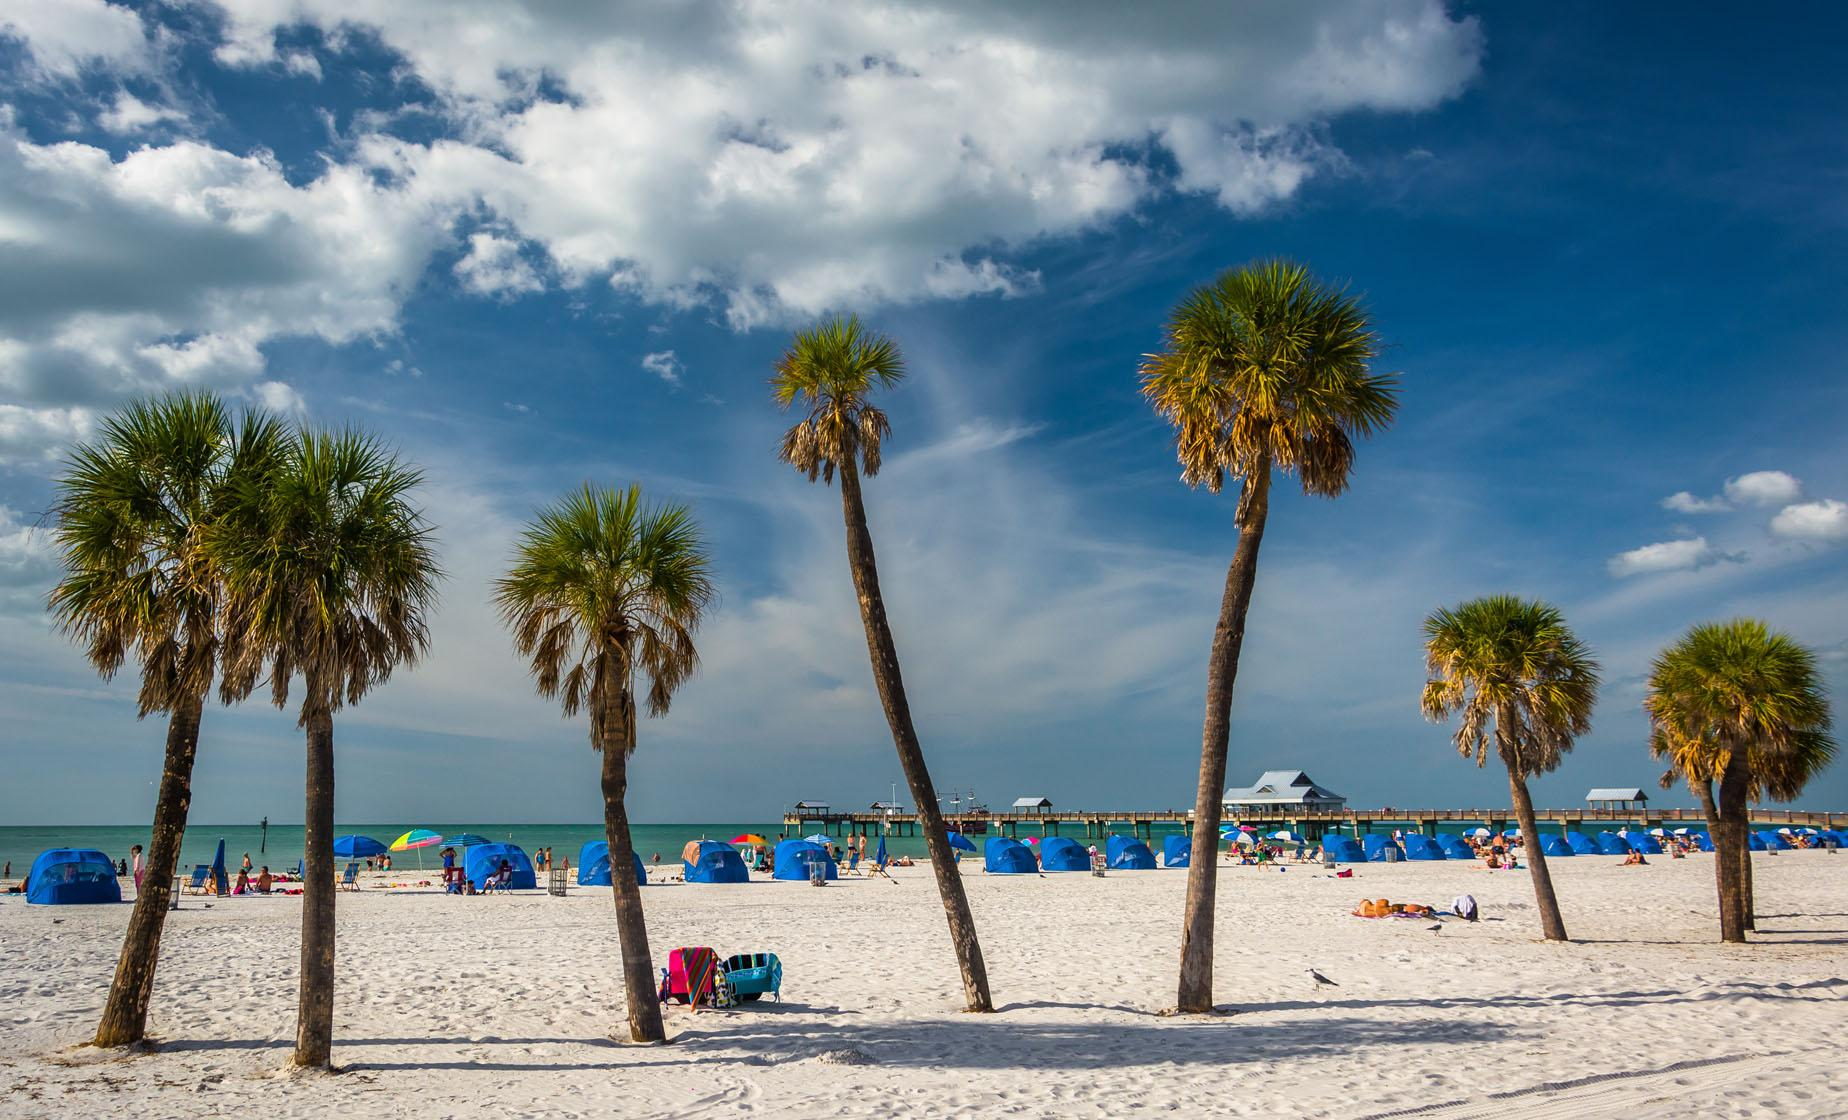 Clearwater Beach Day Trip and Pirate Cruise with Transport in Orlando Florida